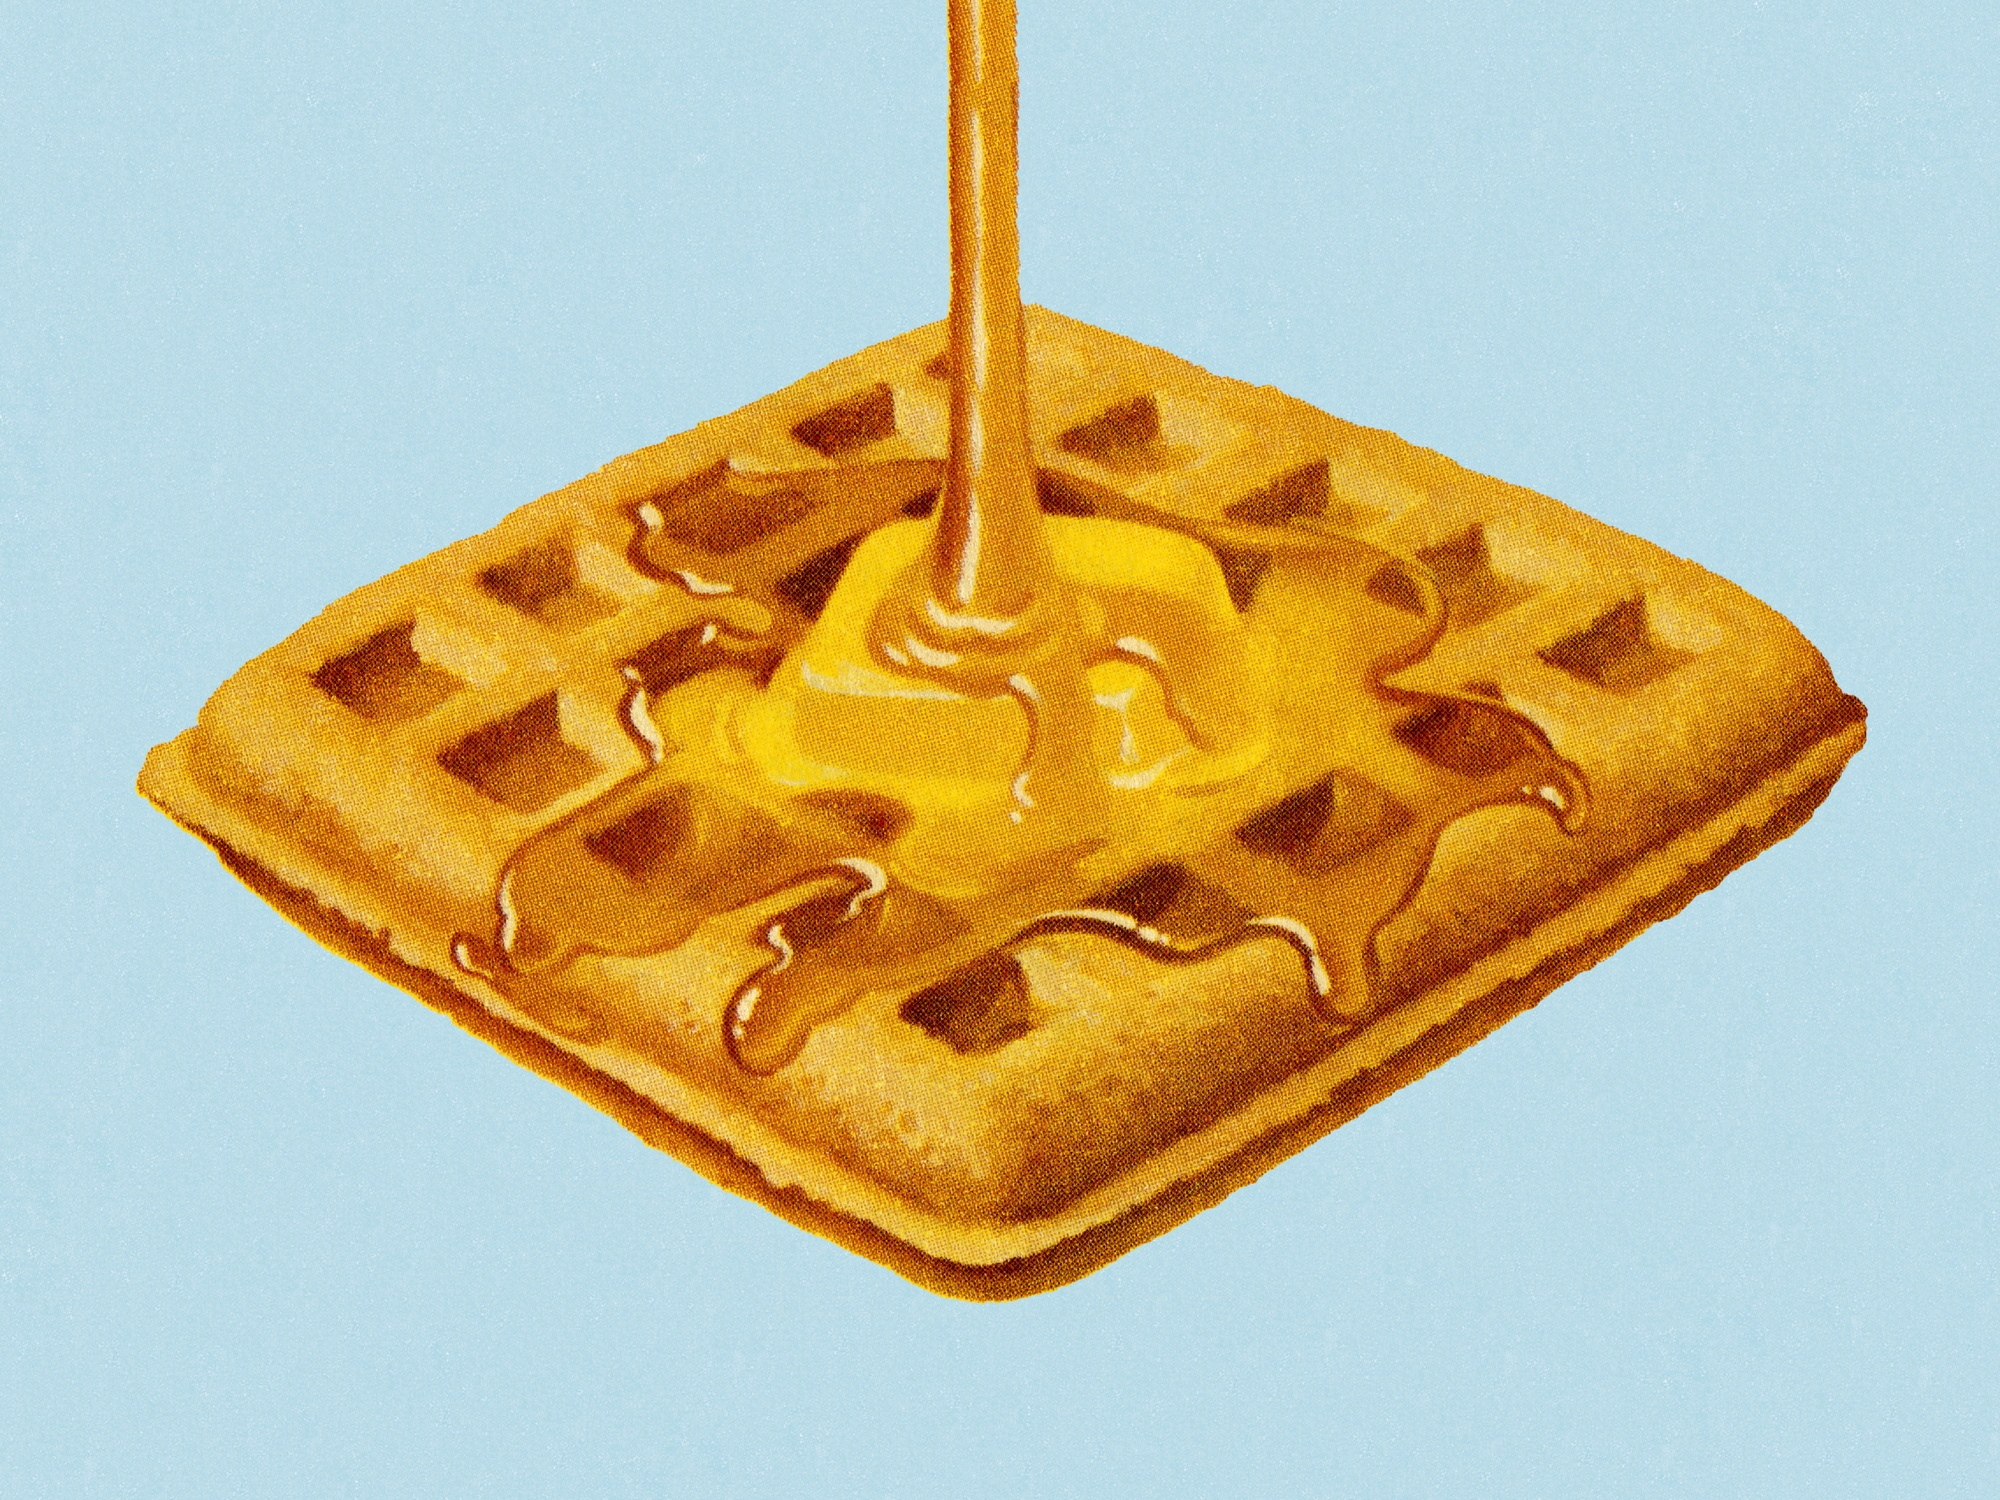 syrup being poured on a waffle with butter August 2020